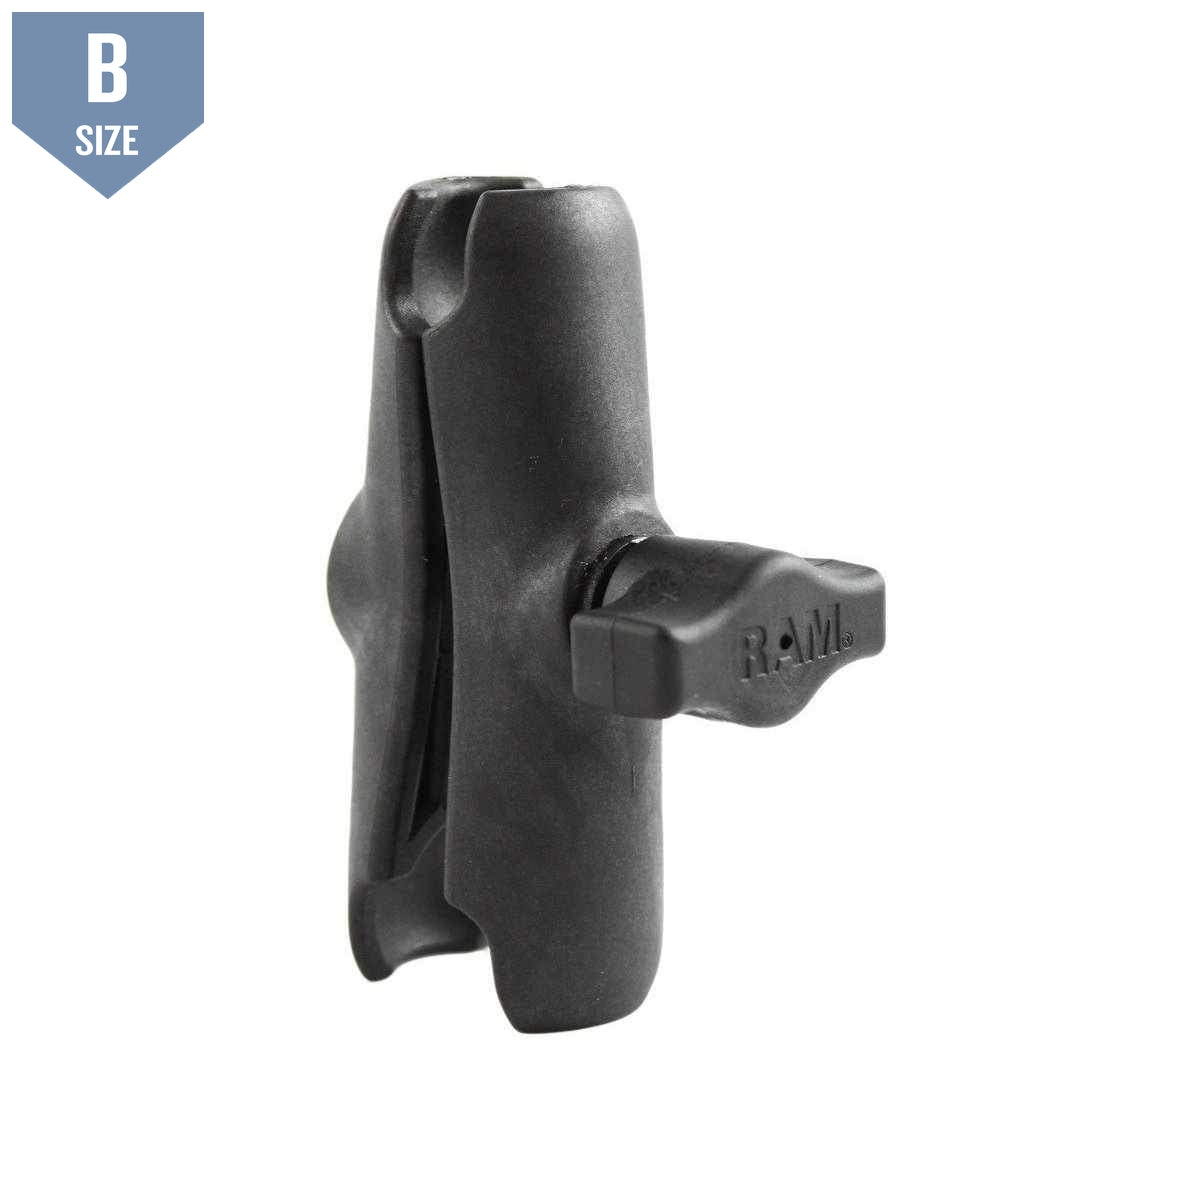 RAM Standard Composite Clamp Arm B Size (RAP-B-201U) - Modest Mounts